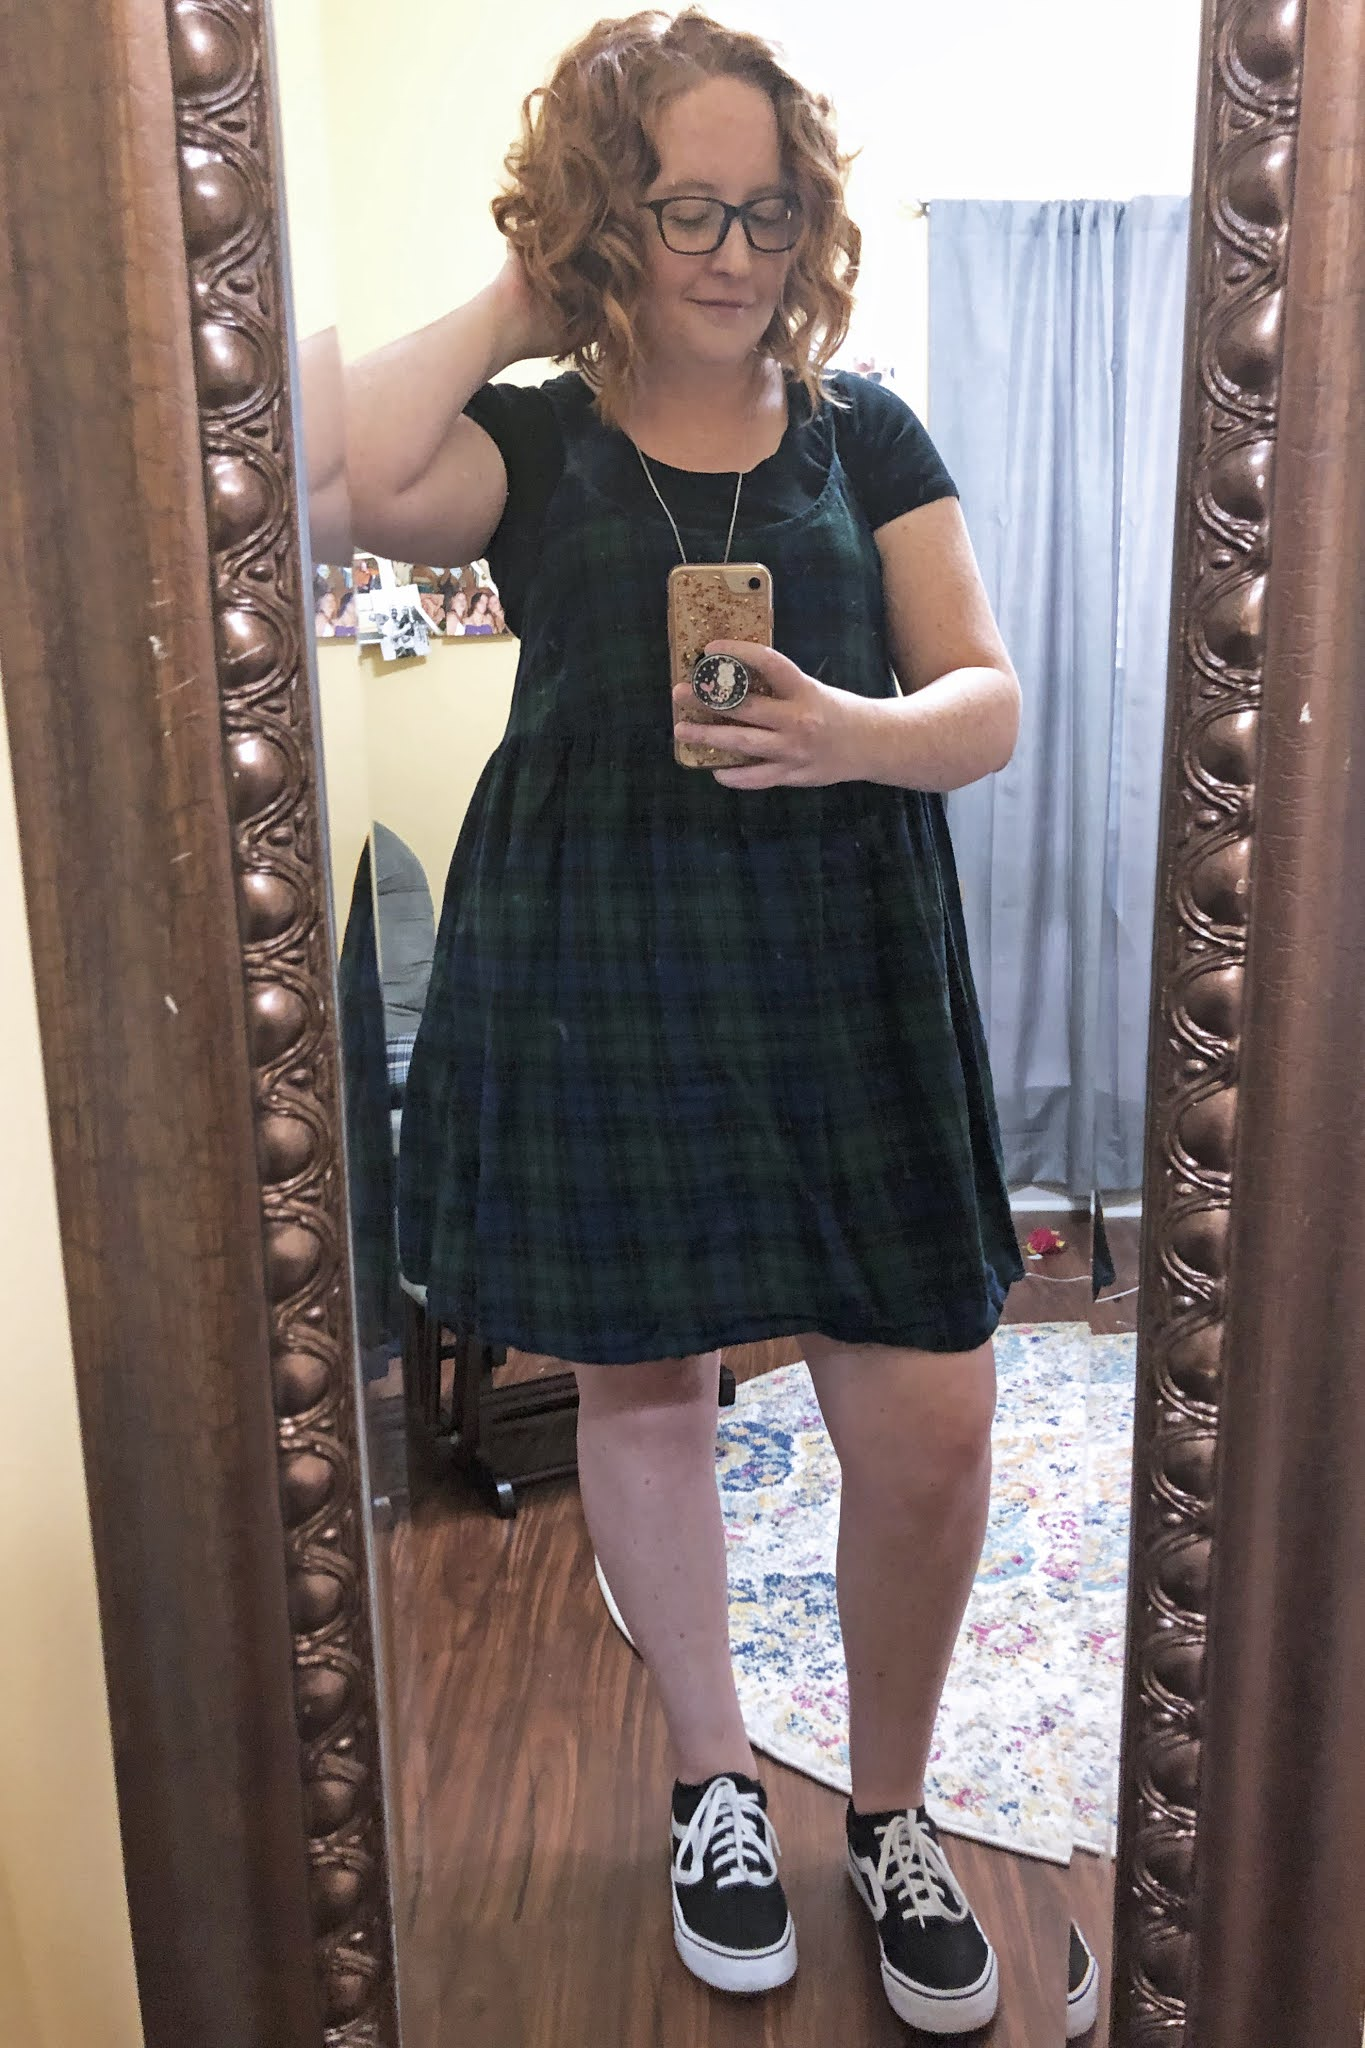 plaid dress over black tshirt